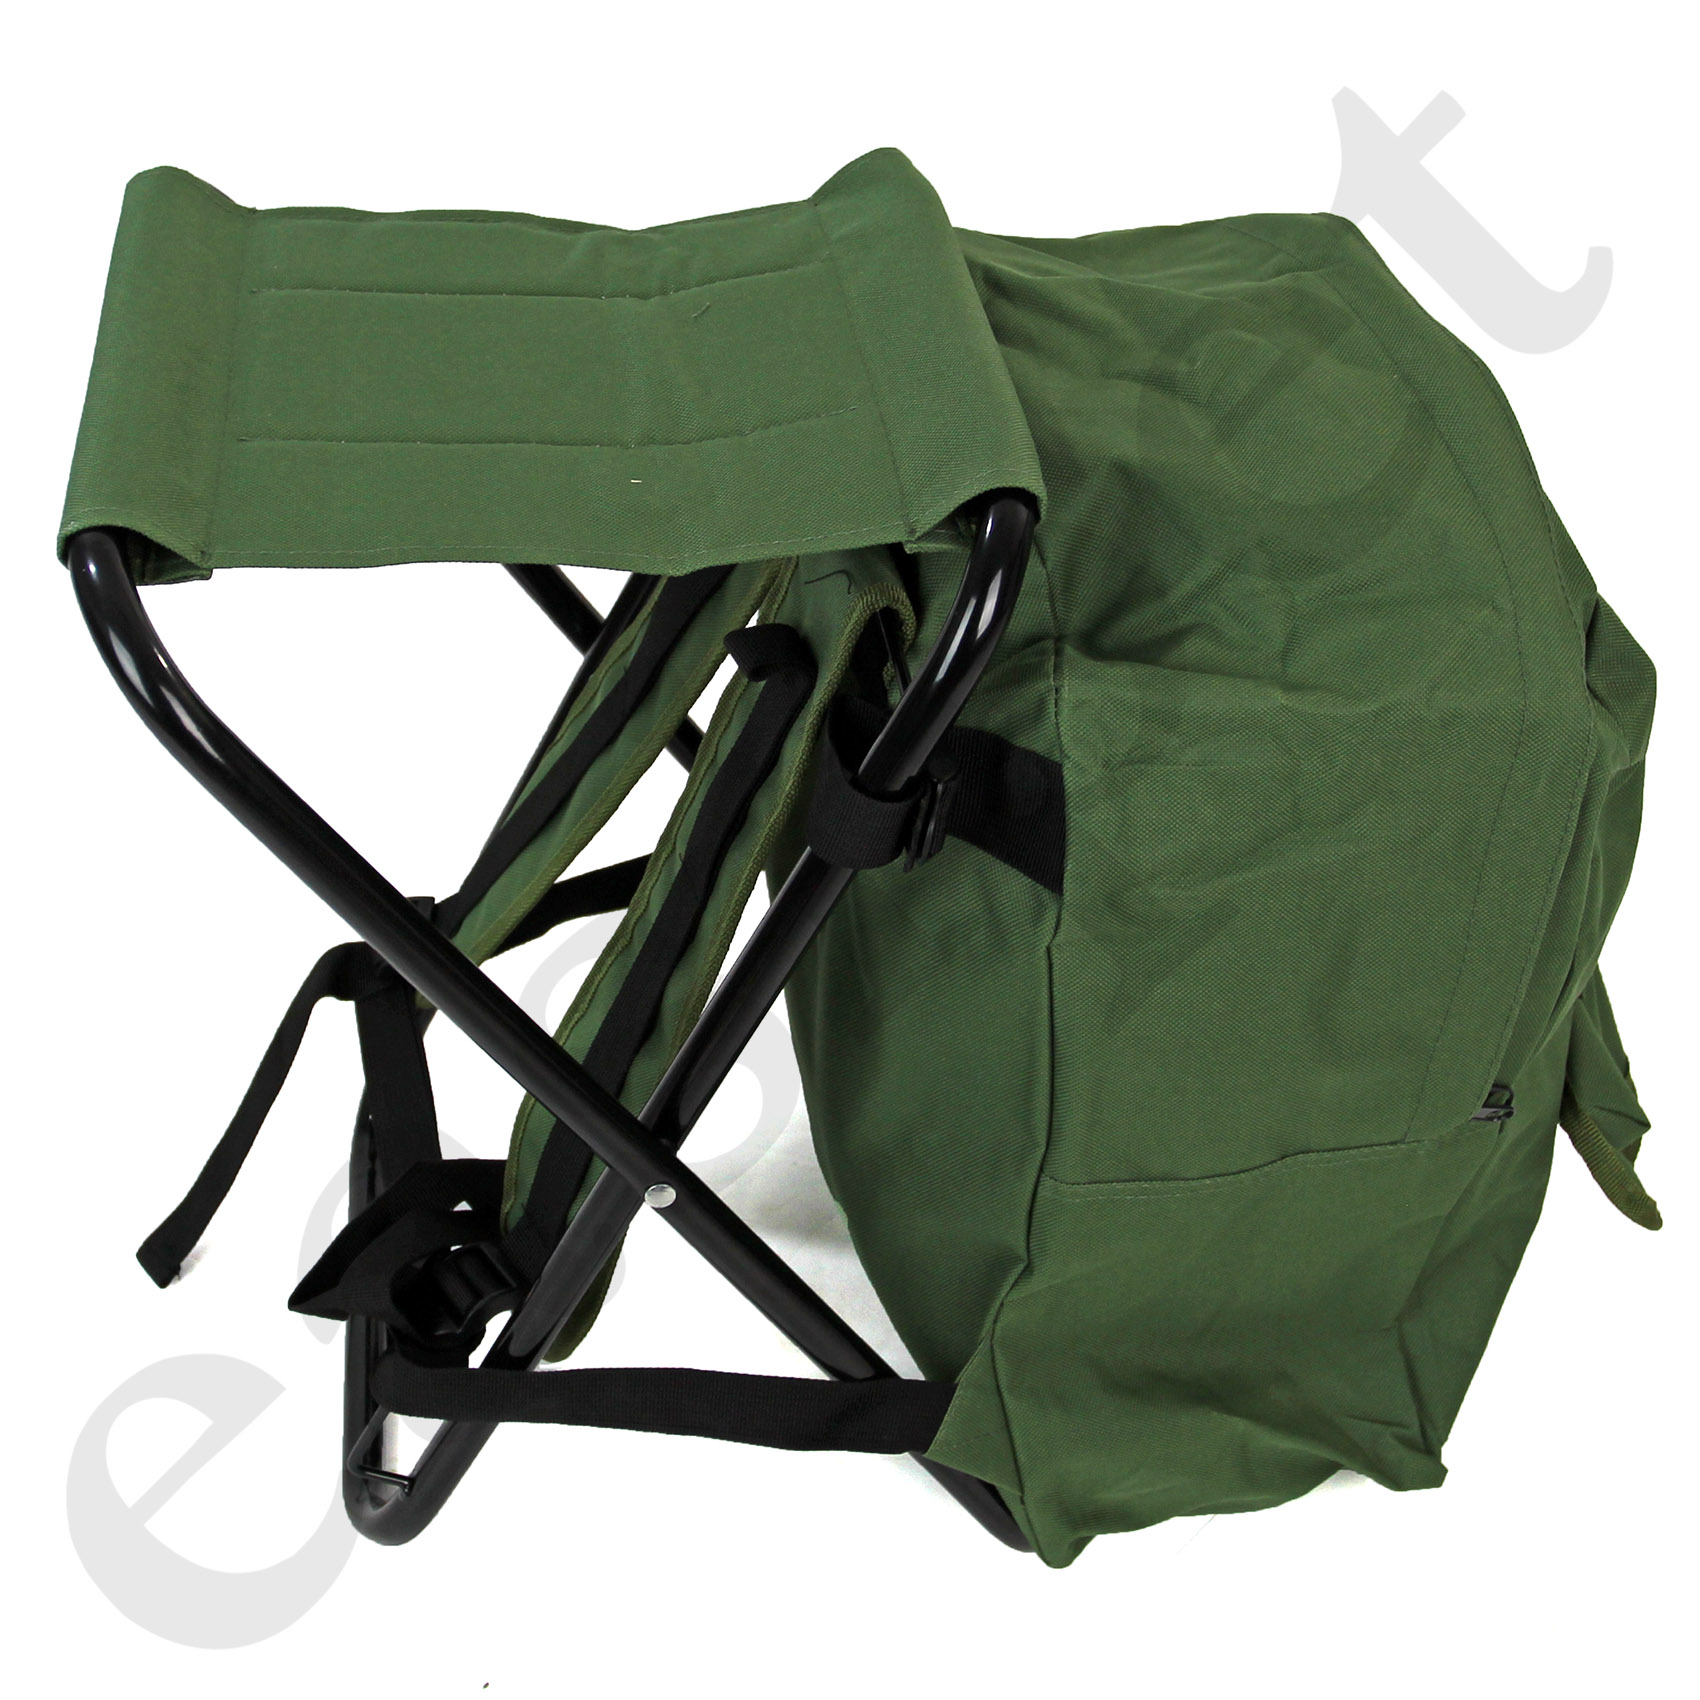 Fishing Tackle Stool And Backpack Easipet 67168 Easipet